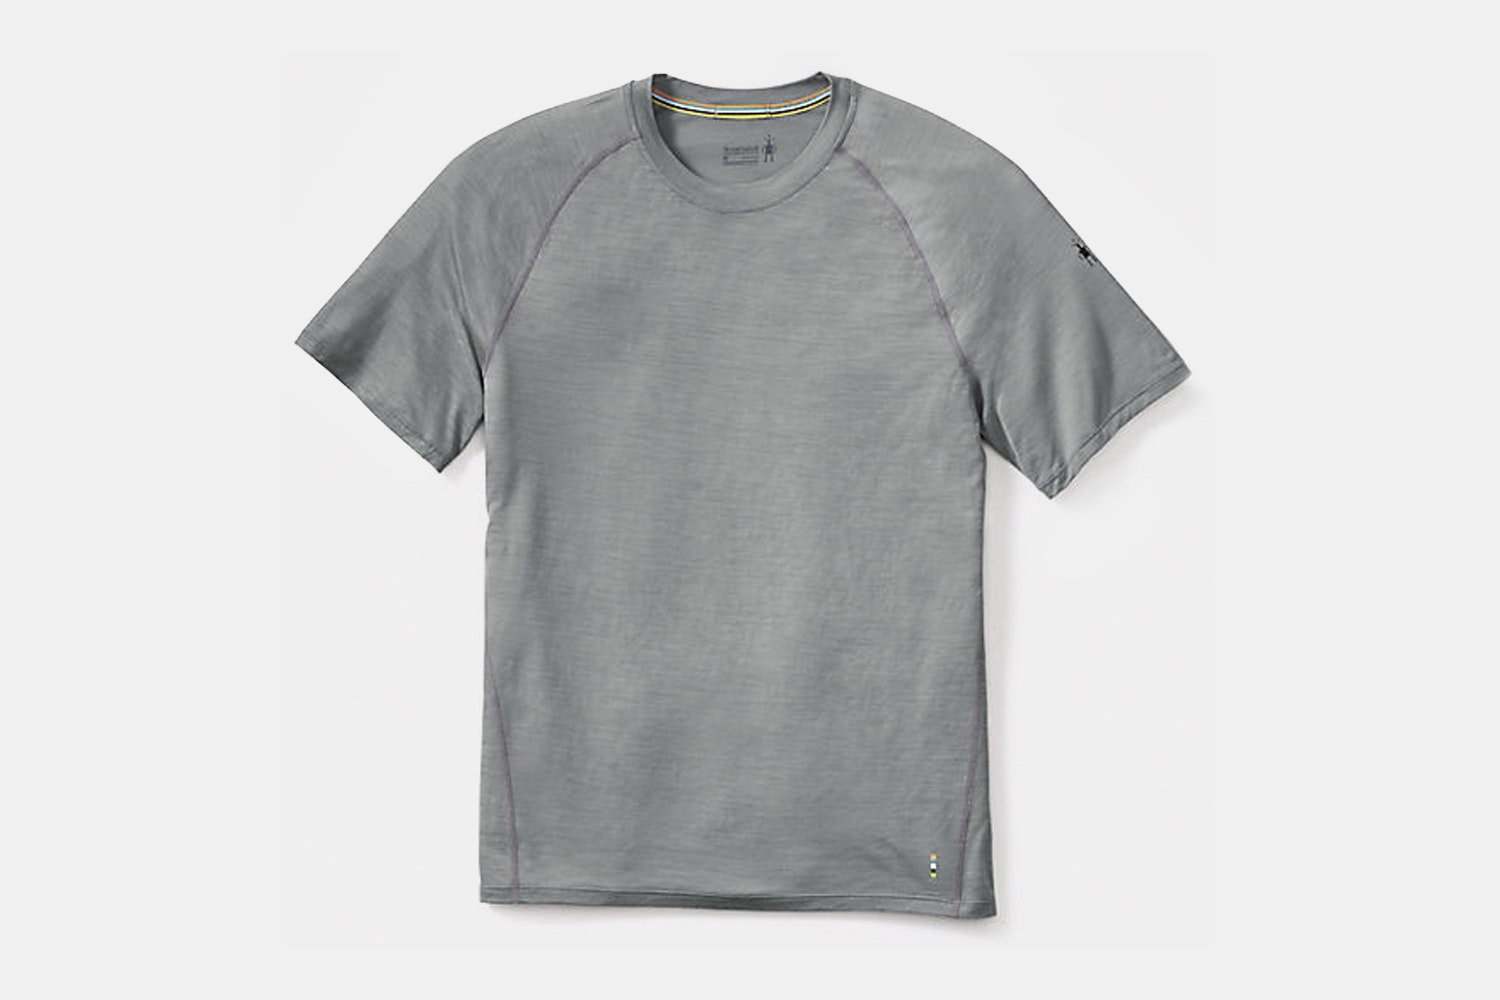 Men's – Patterned Light Gray